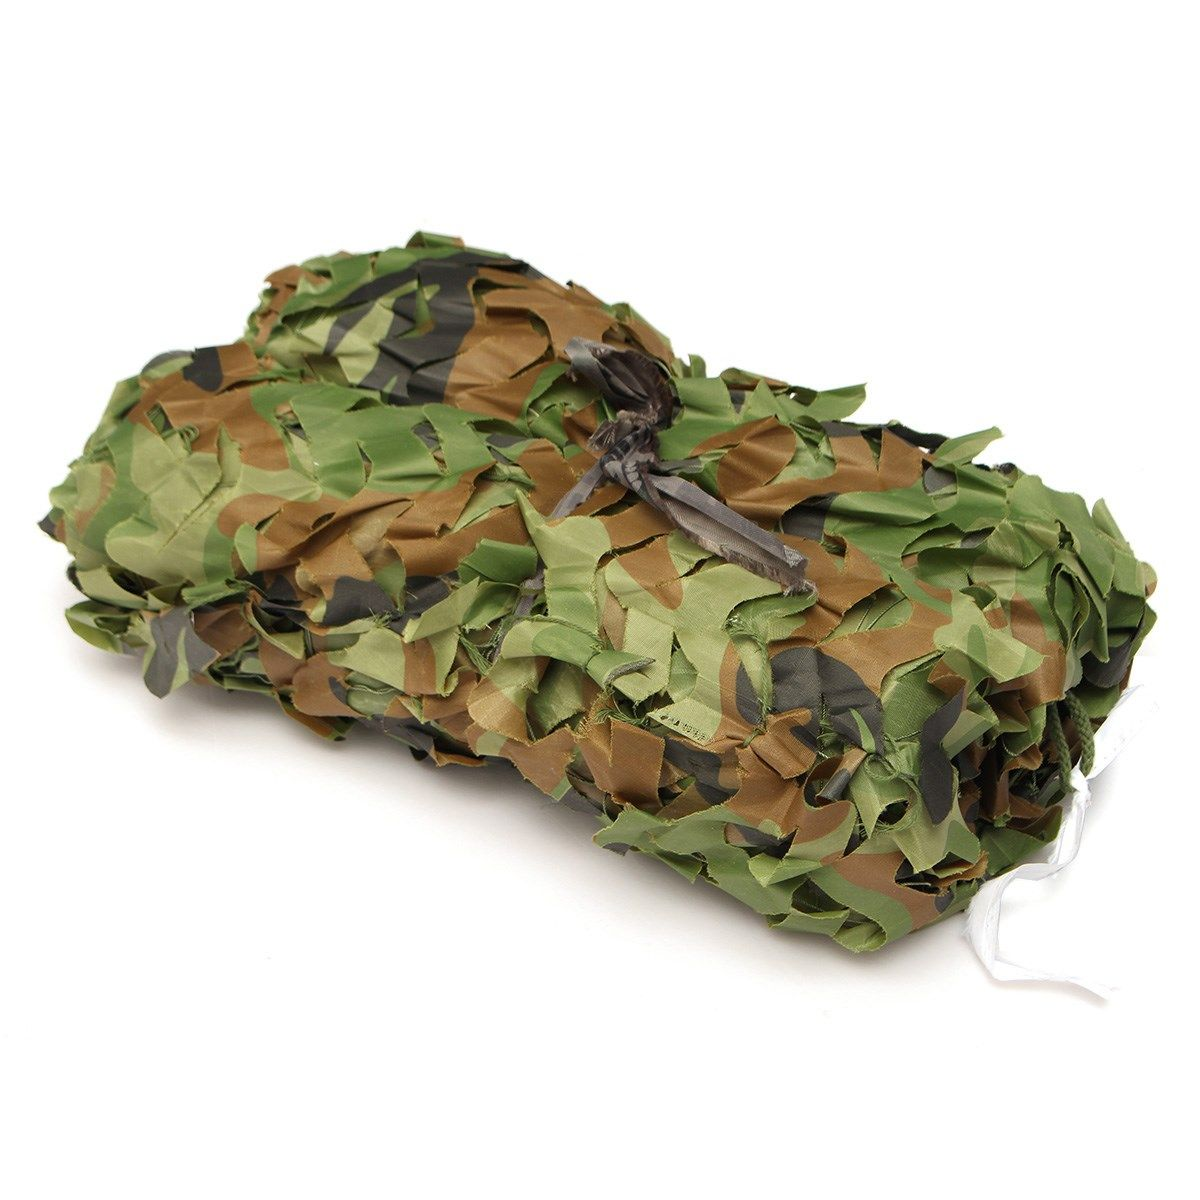 3 x 5m Hunting Camping Outdoor Desert Woodlands Blinds Army Military Camouflage Camo Net Sun <font><b>Shelter</b></font> Jungle sun <font><b>shelter</b></font>